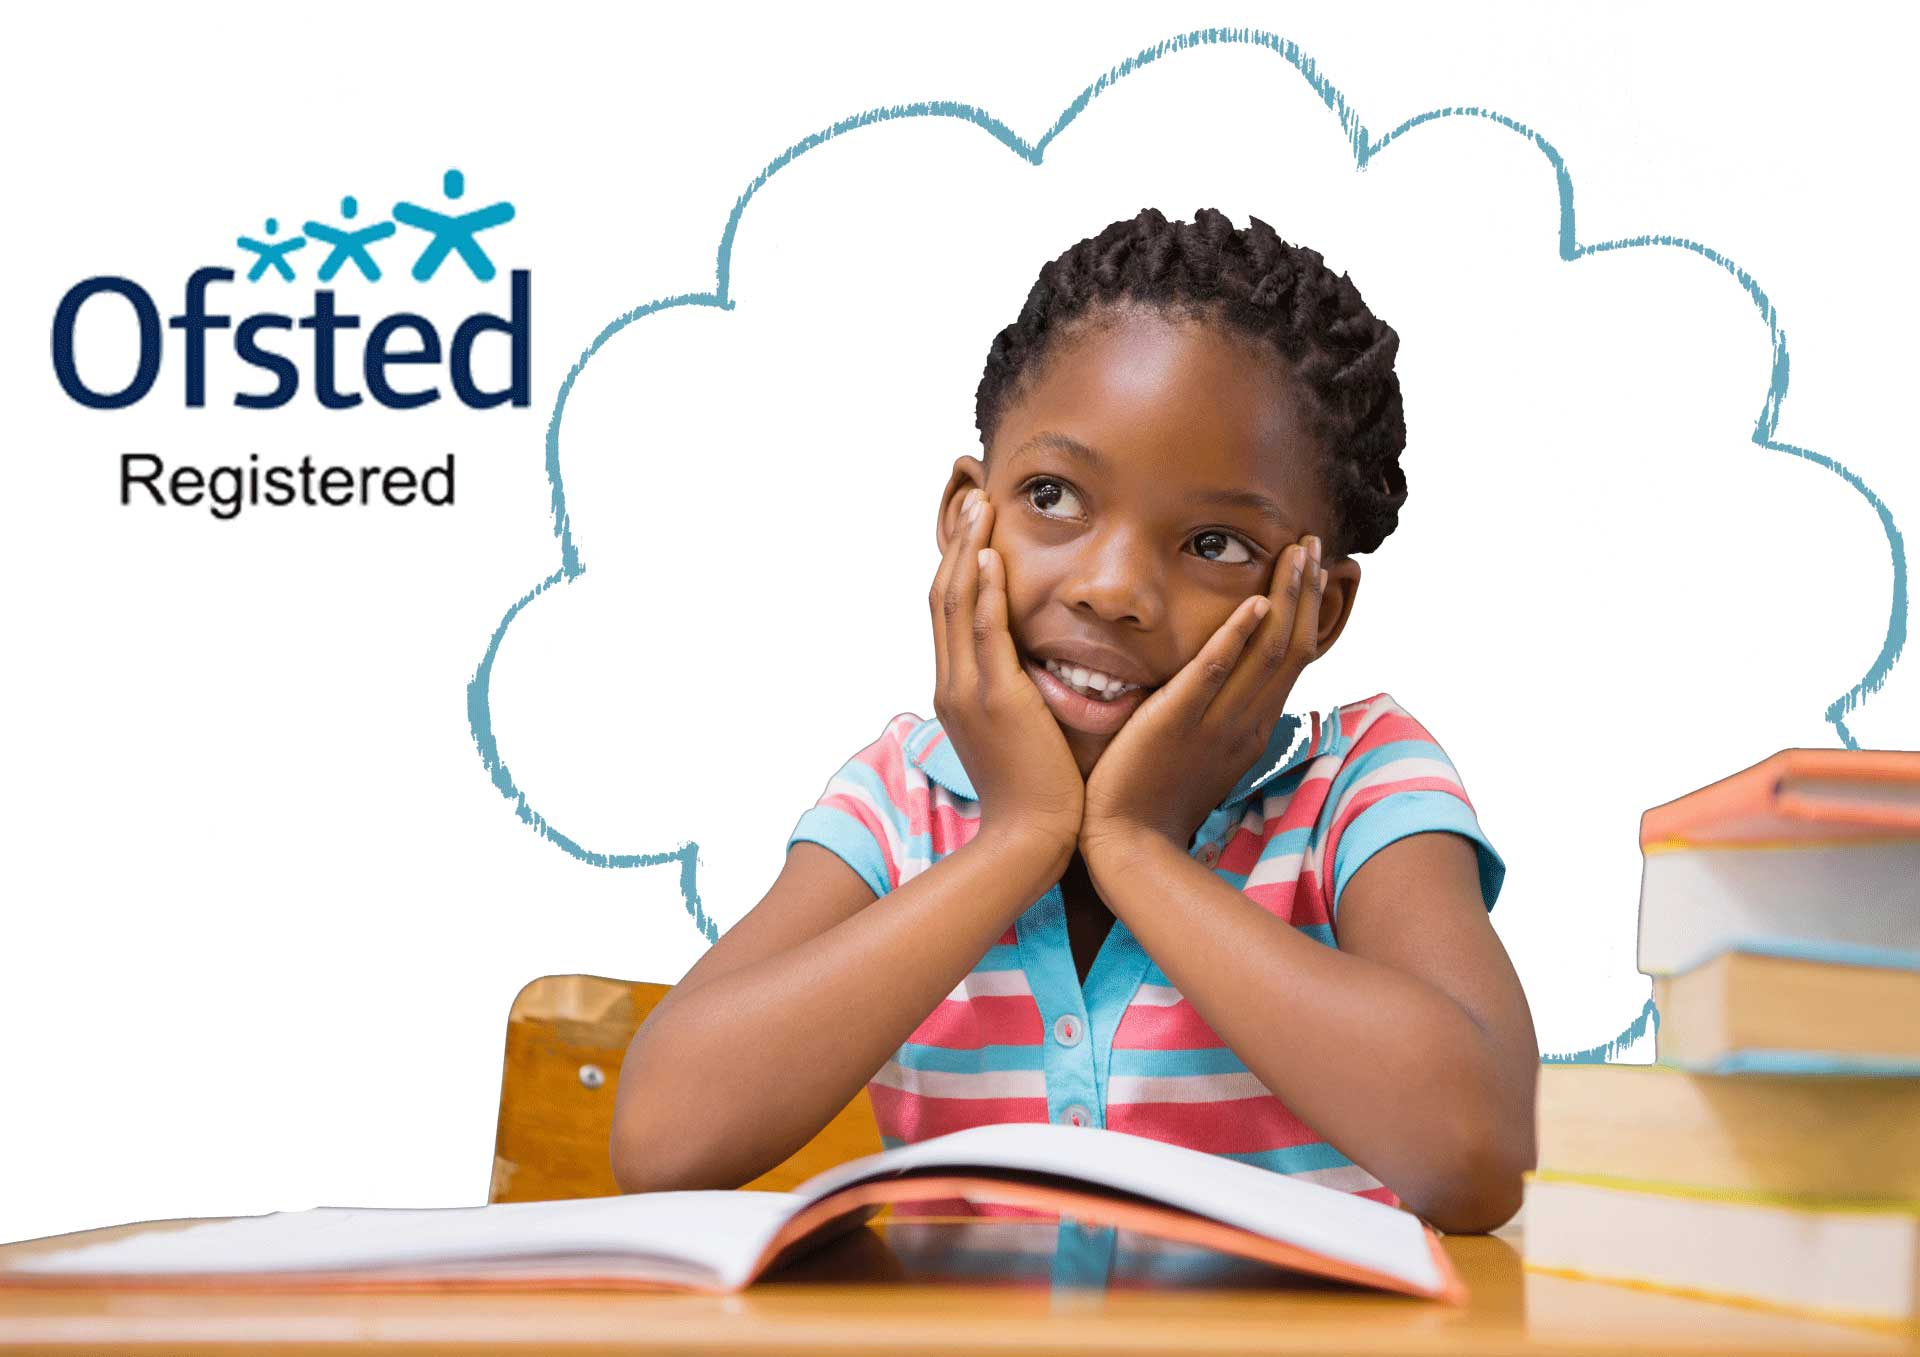 ofsted registered tuition centre